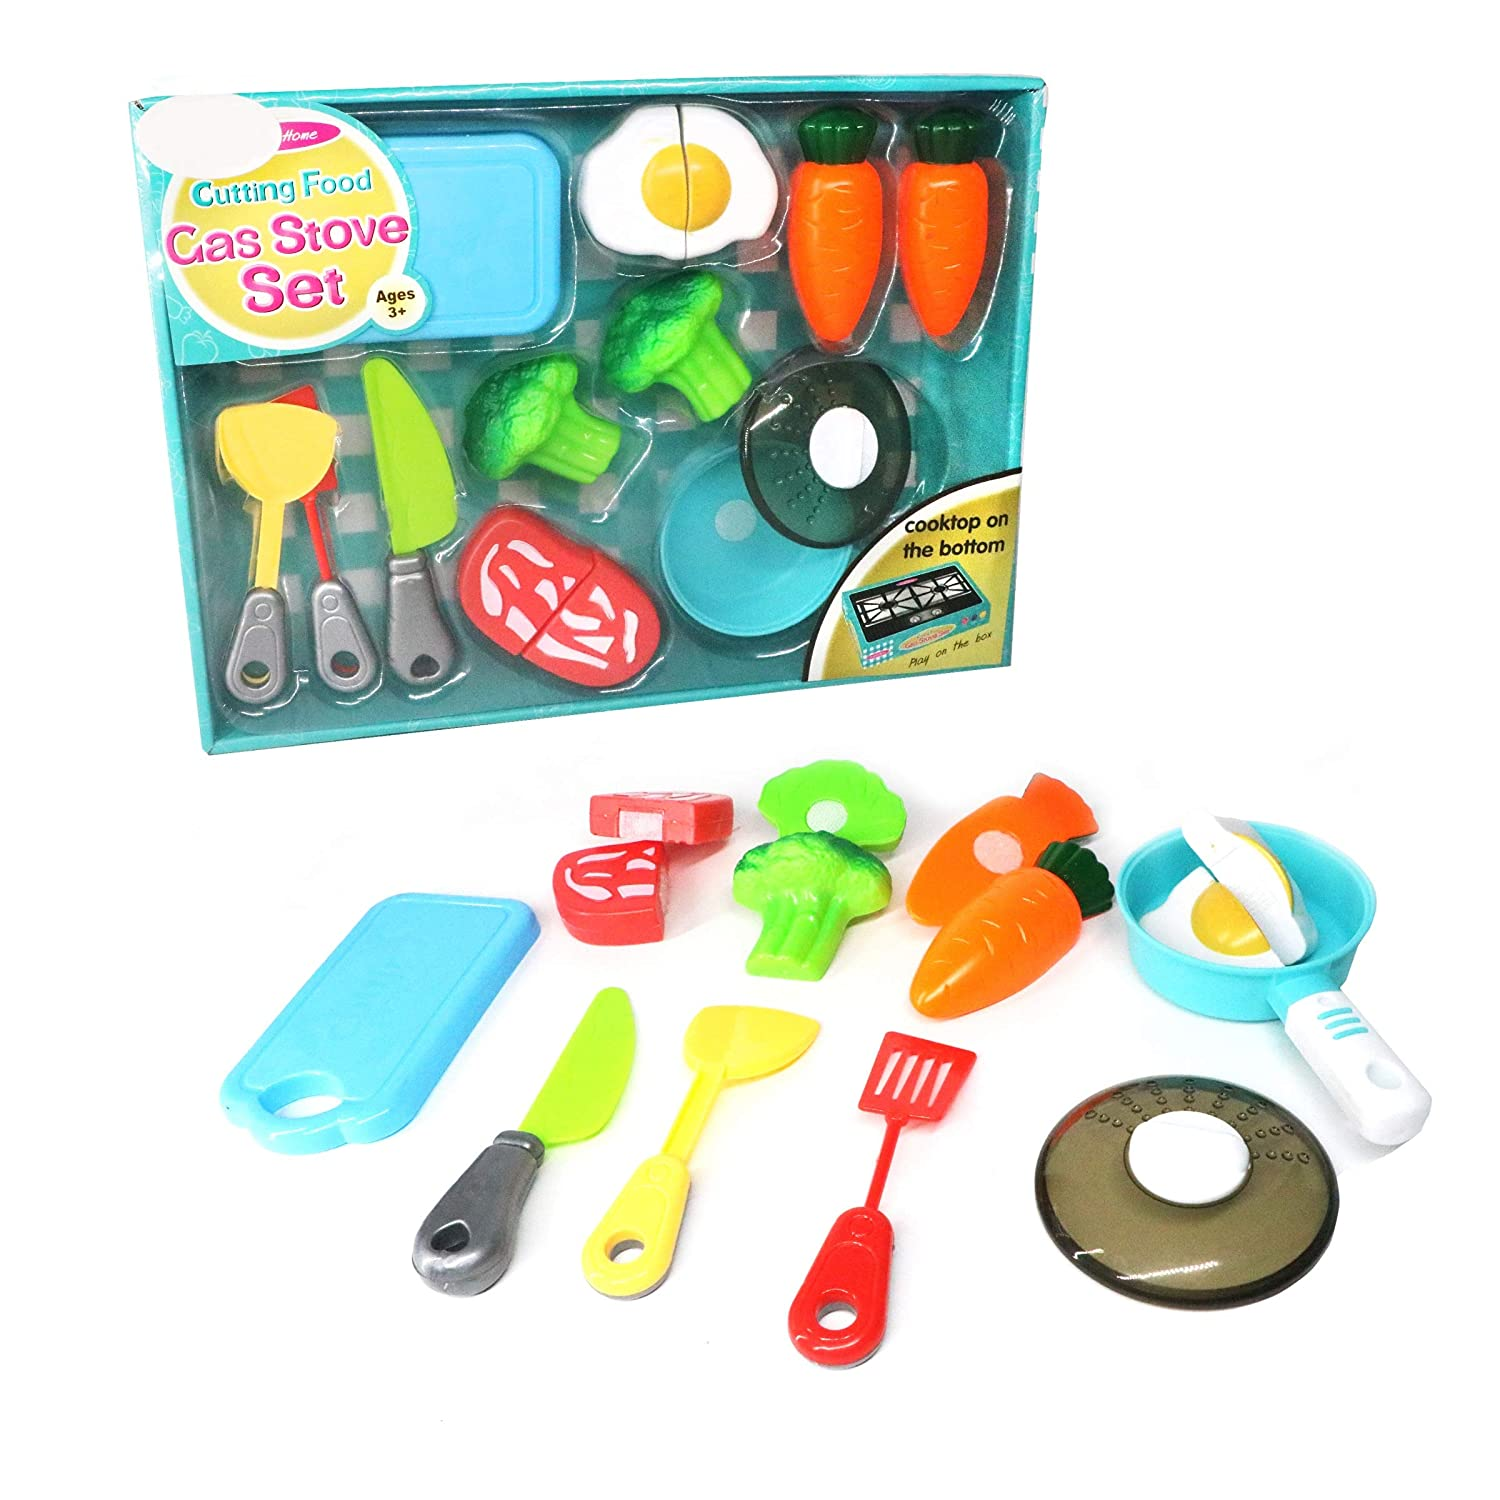 LOZUSA World Chef Gas Stove Set Pretend Cutting Food for Toddlers Play Pots and Pans Kitchen Accessories Toy Food Educational Playset with Toy Knife,Cutting Board,Veggies, Egg, Meat, and Pot